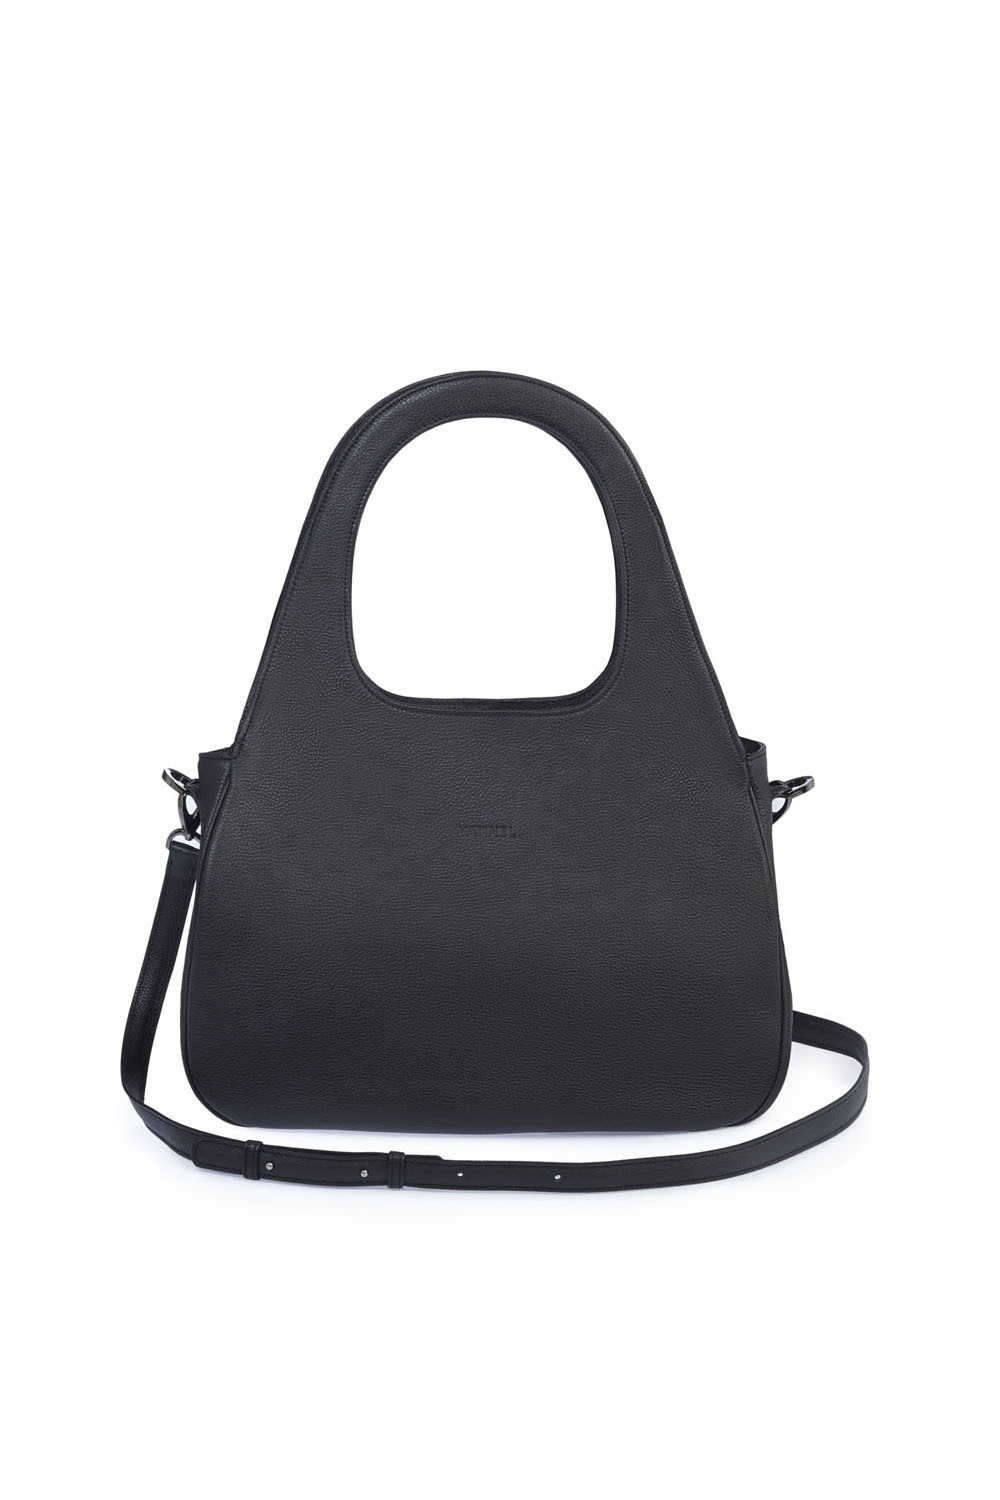 VATINEL HANDBAGS BERLIN BLACK